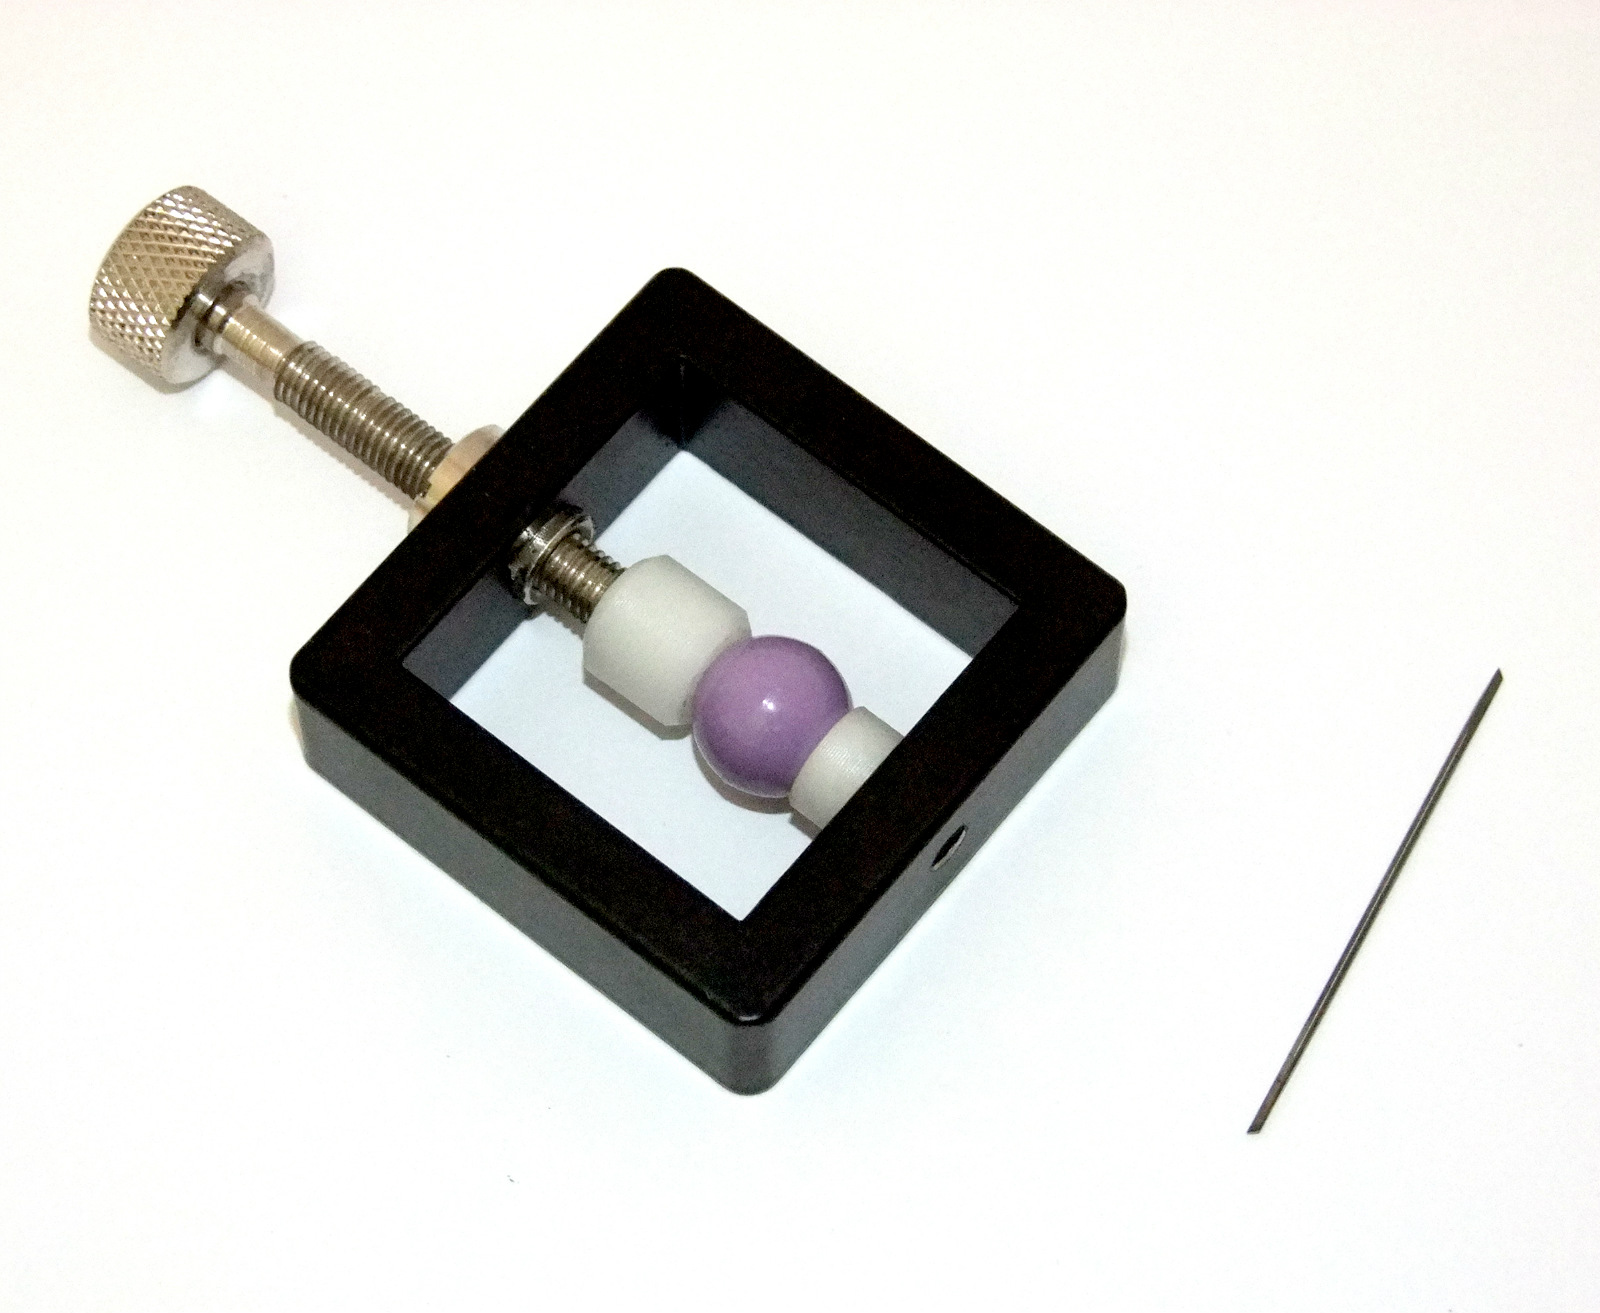 2-10mm Bead And Pearl Drilling Vise